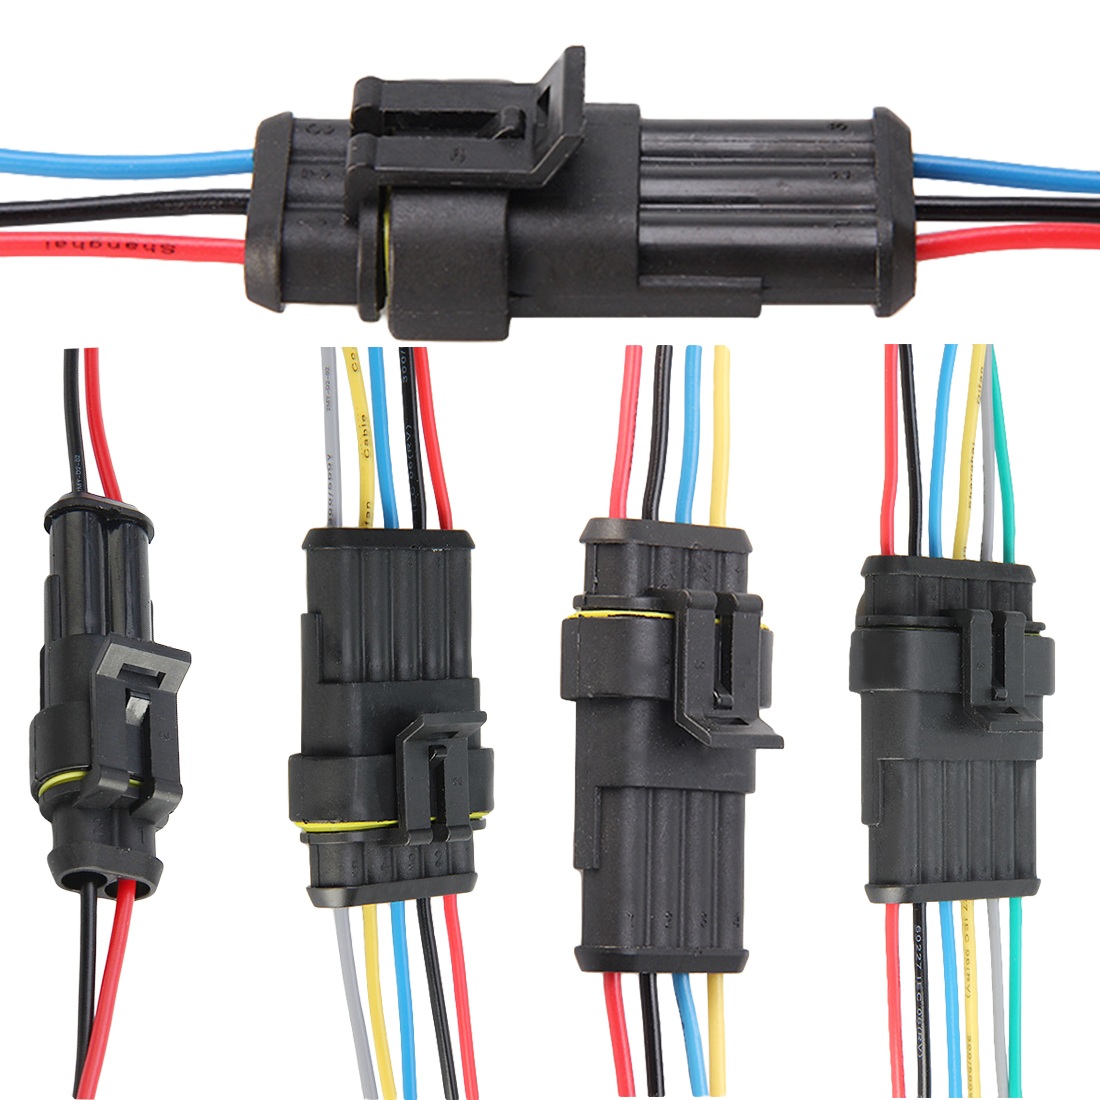 hight resolution of 1 sets lots 2 3 4 5 6 pin car waterproof electrical connector plug with electrical wire cable car auto truck wire harness aliexpress com imall com